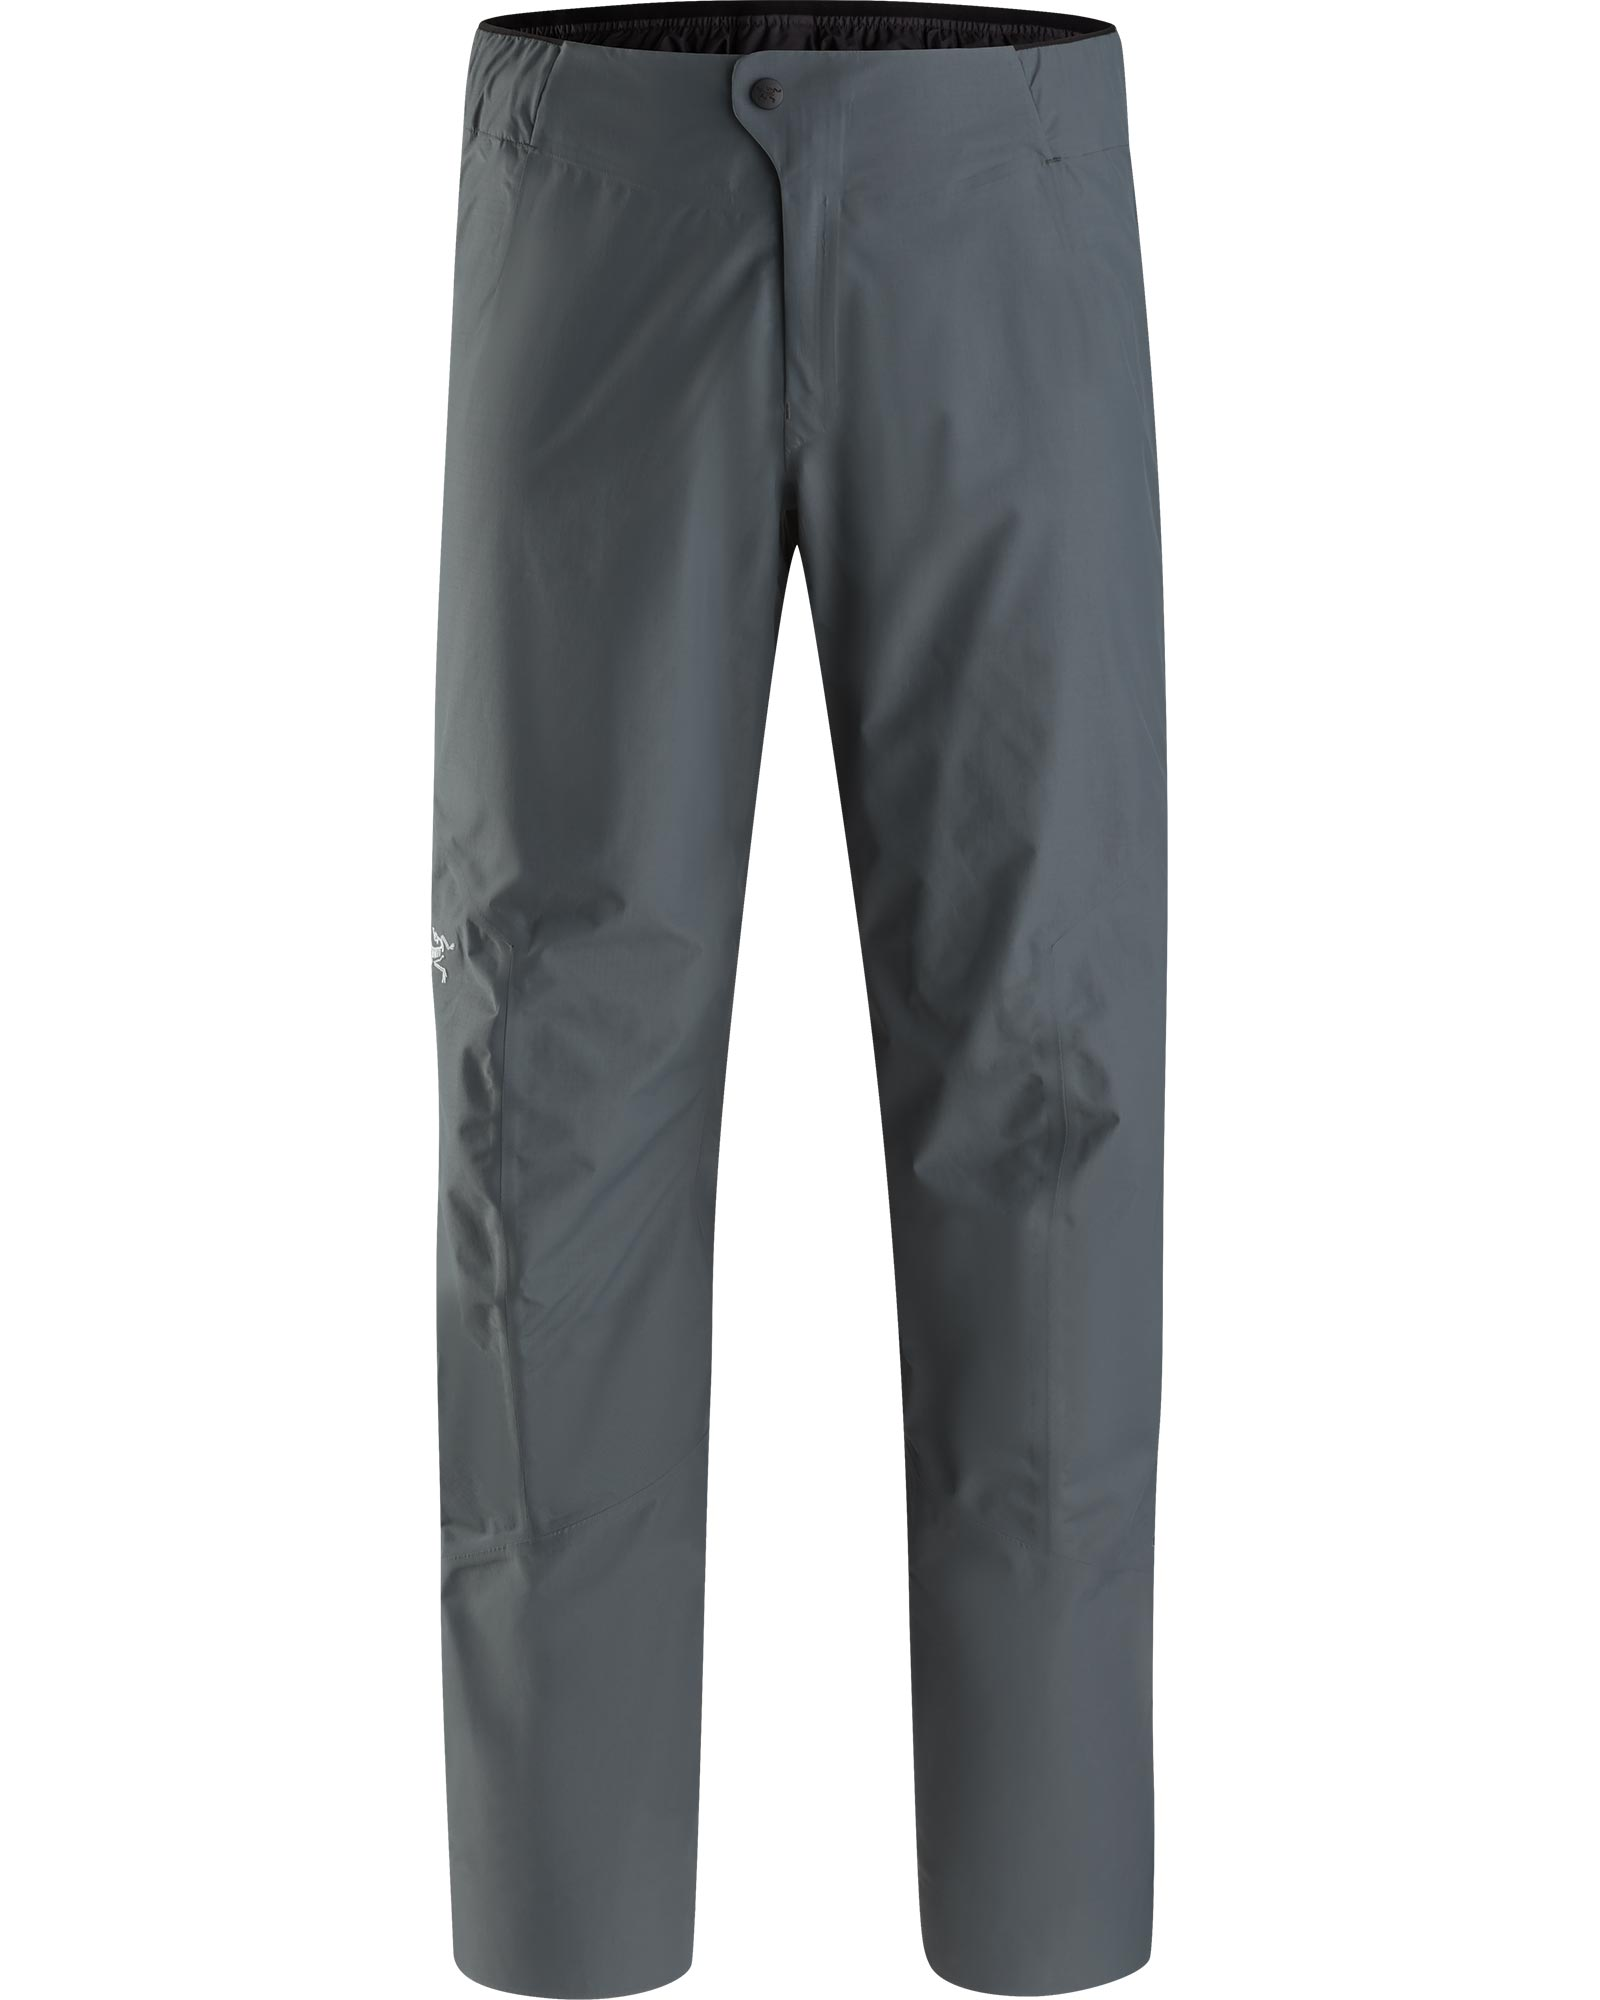 Arc'teryx Men's Zeta SL GORE-TEX PACLITE Plus Pants 0